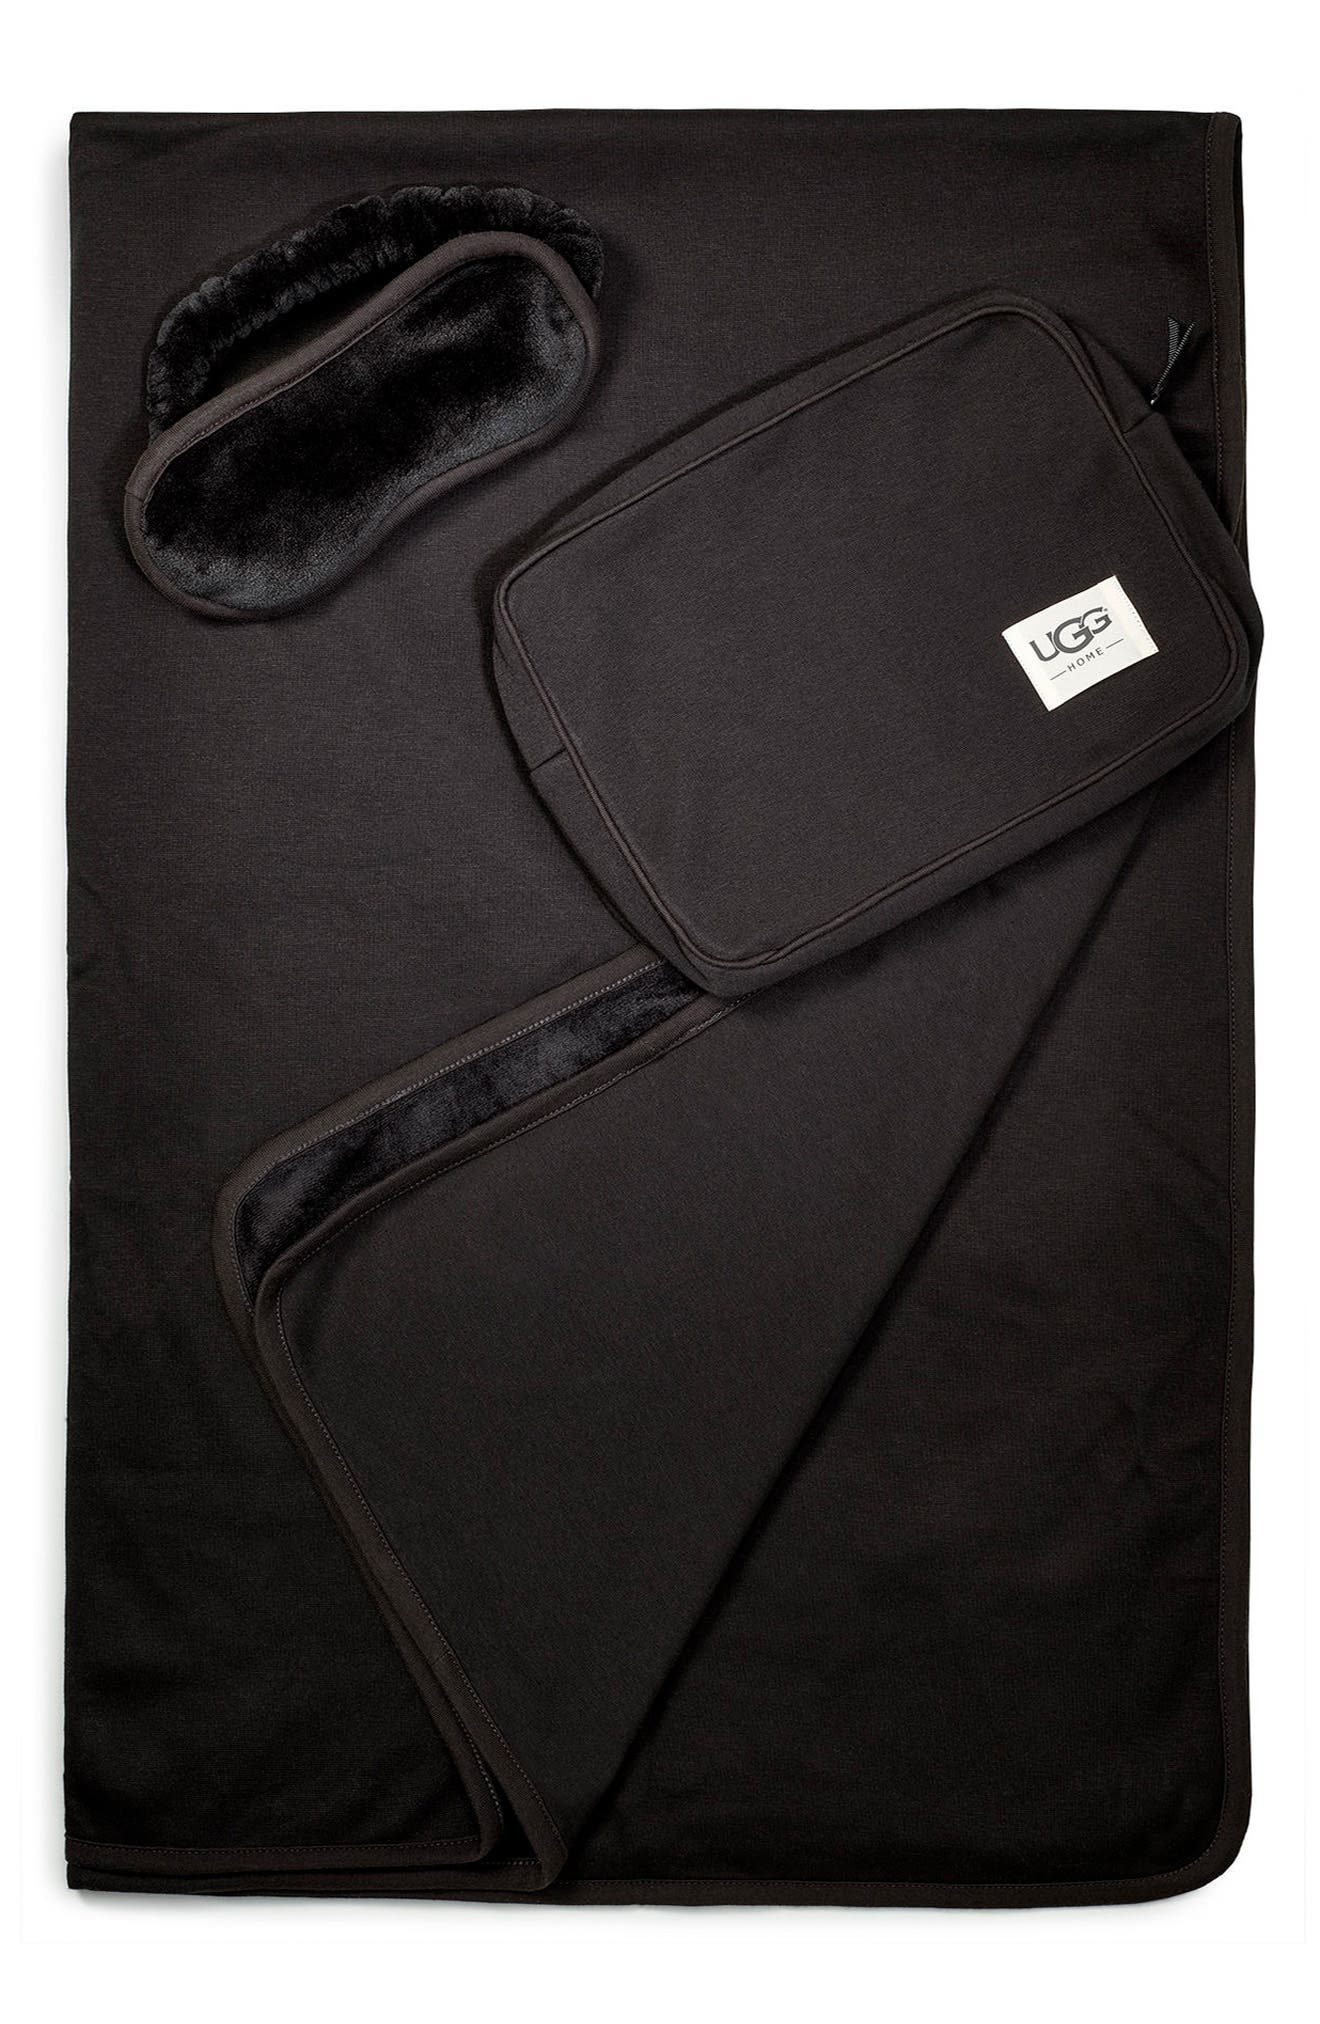 UGG<SUP>®</SUP> Duffield Eye Mask, Pouch & Blanket Travel Set, Main, color, BLACK